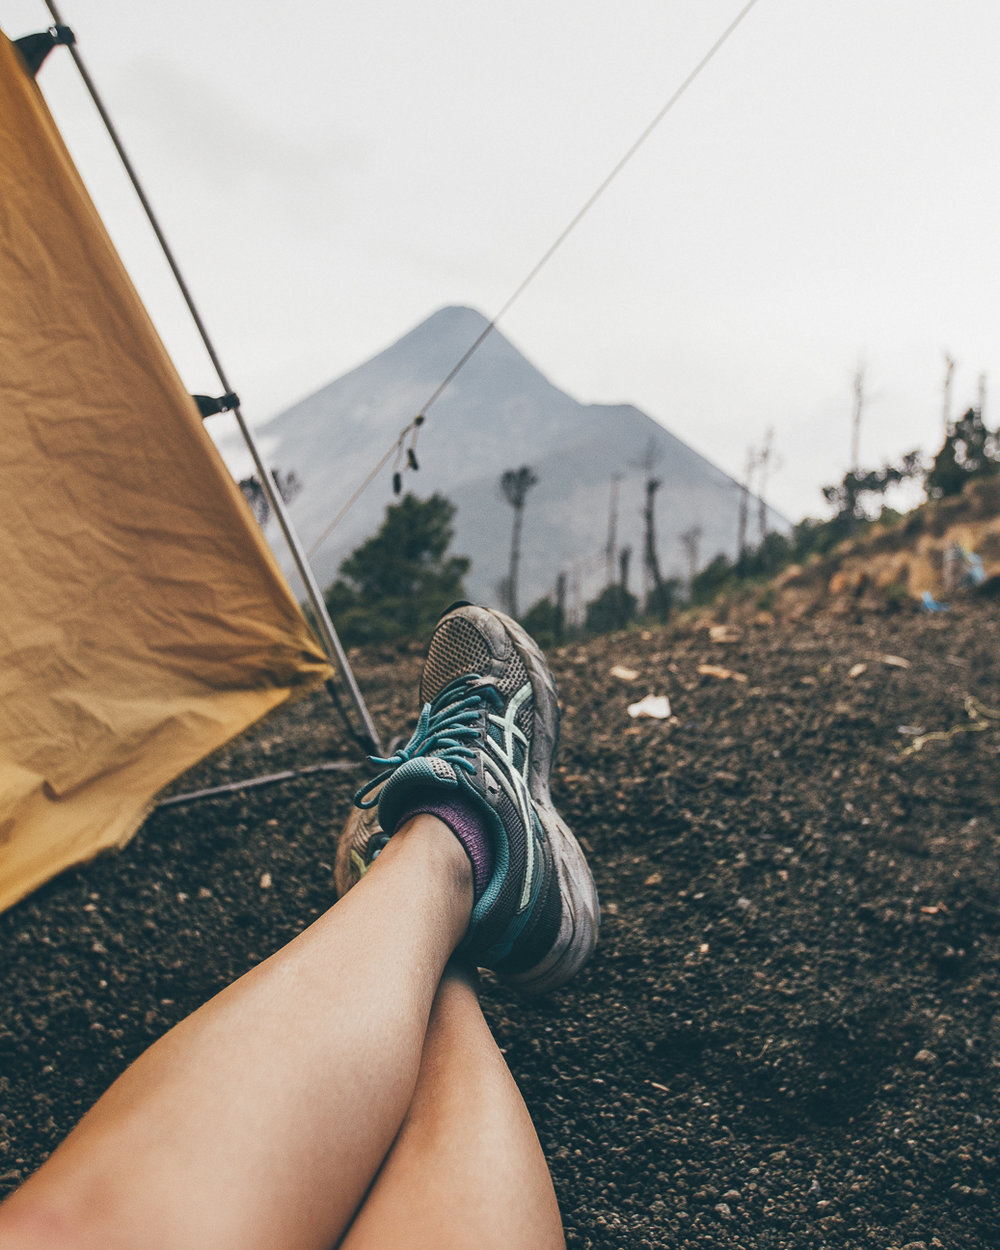 Taking in the view of the nearby El Fuego volcano at base camp on Acatenango